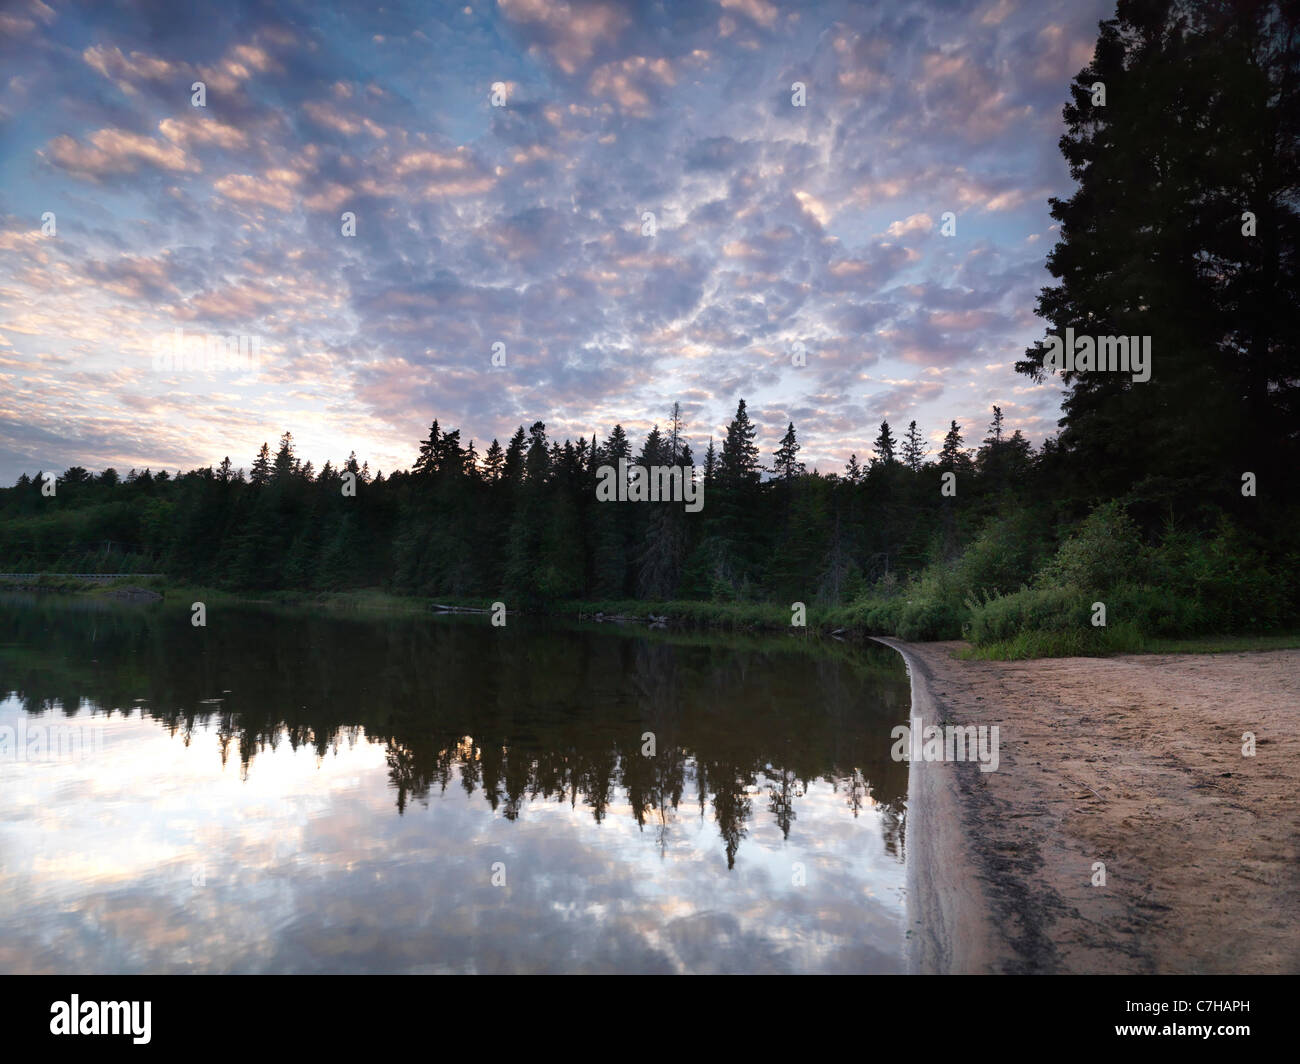 Algonquin Provincial Park summertime nature scenery of the Lake of Two Rivers at sunset. Ontario, Canada. - Stock Image